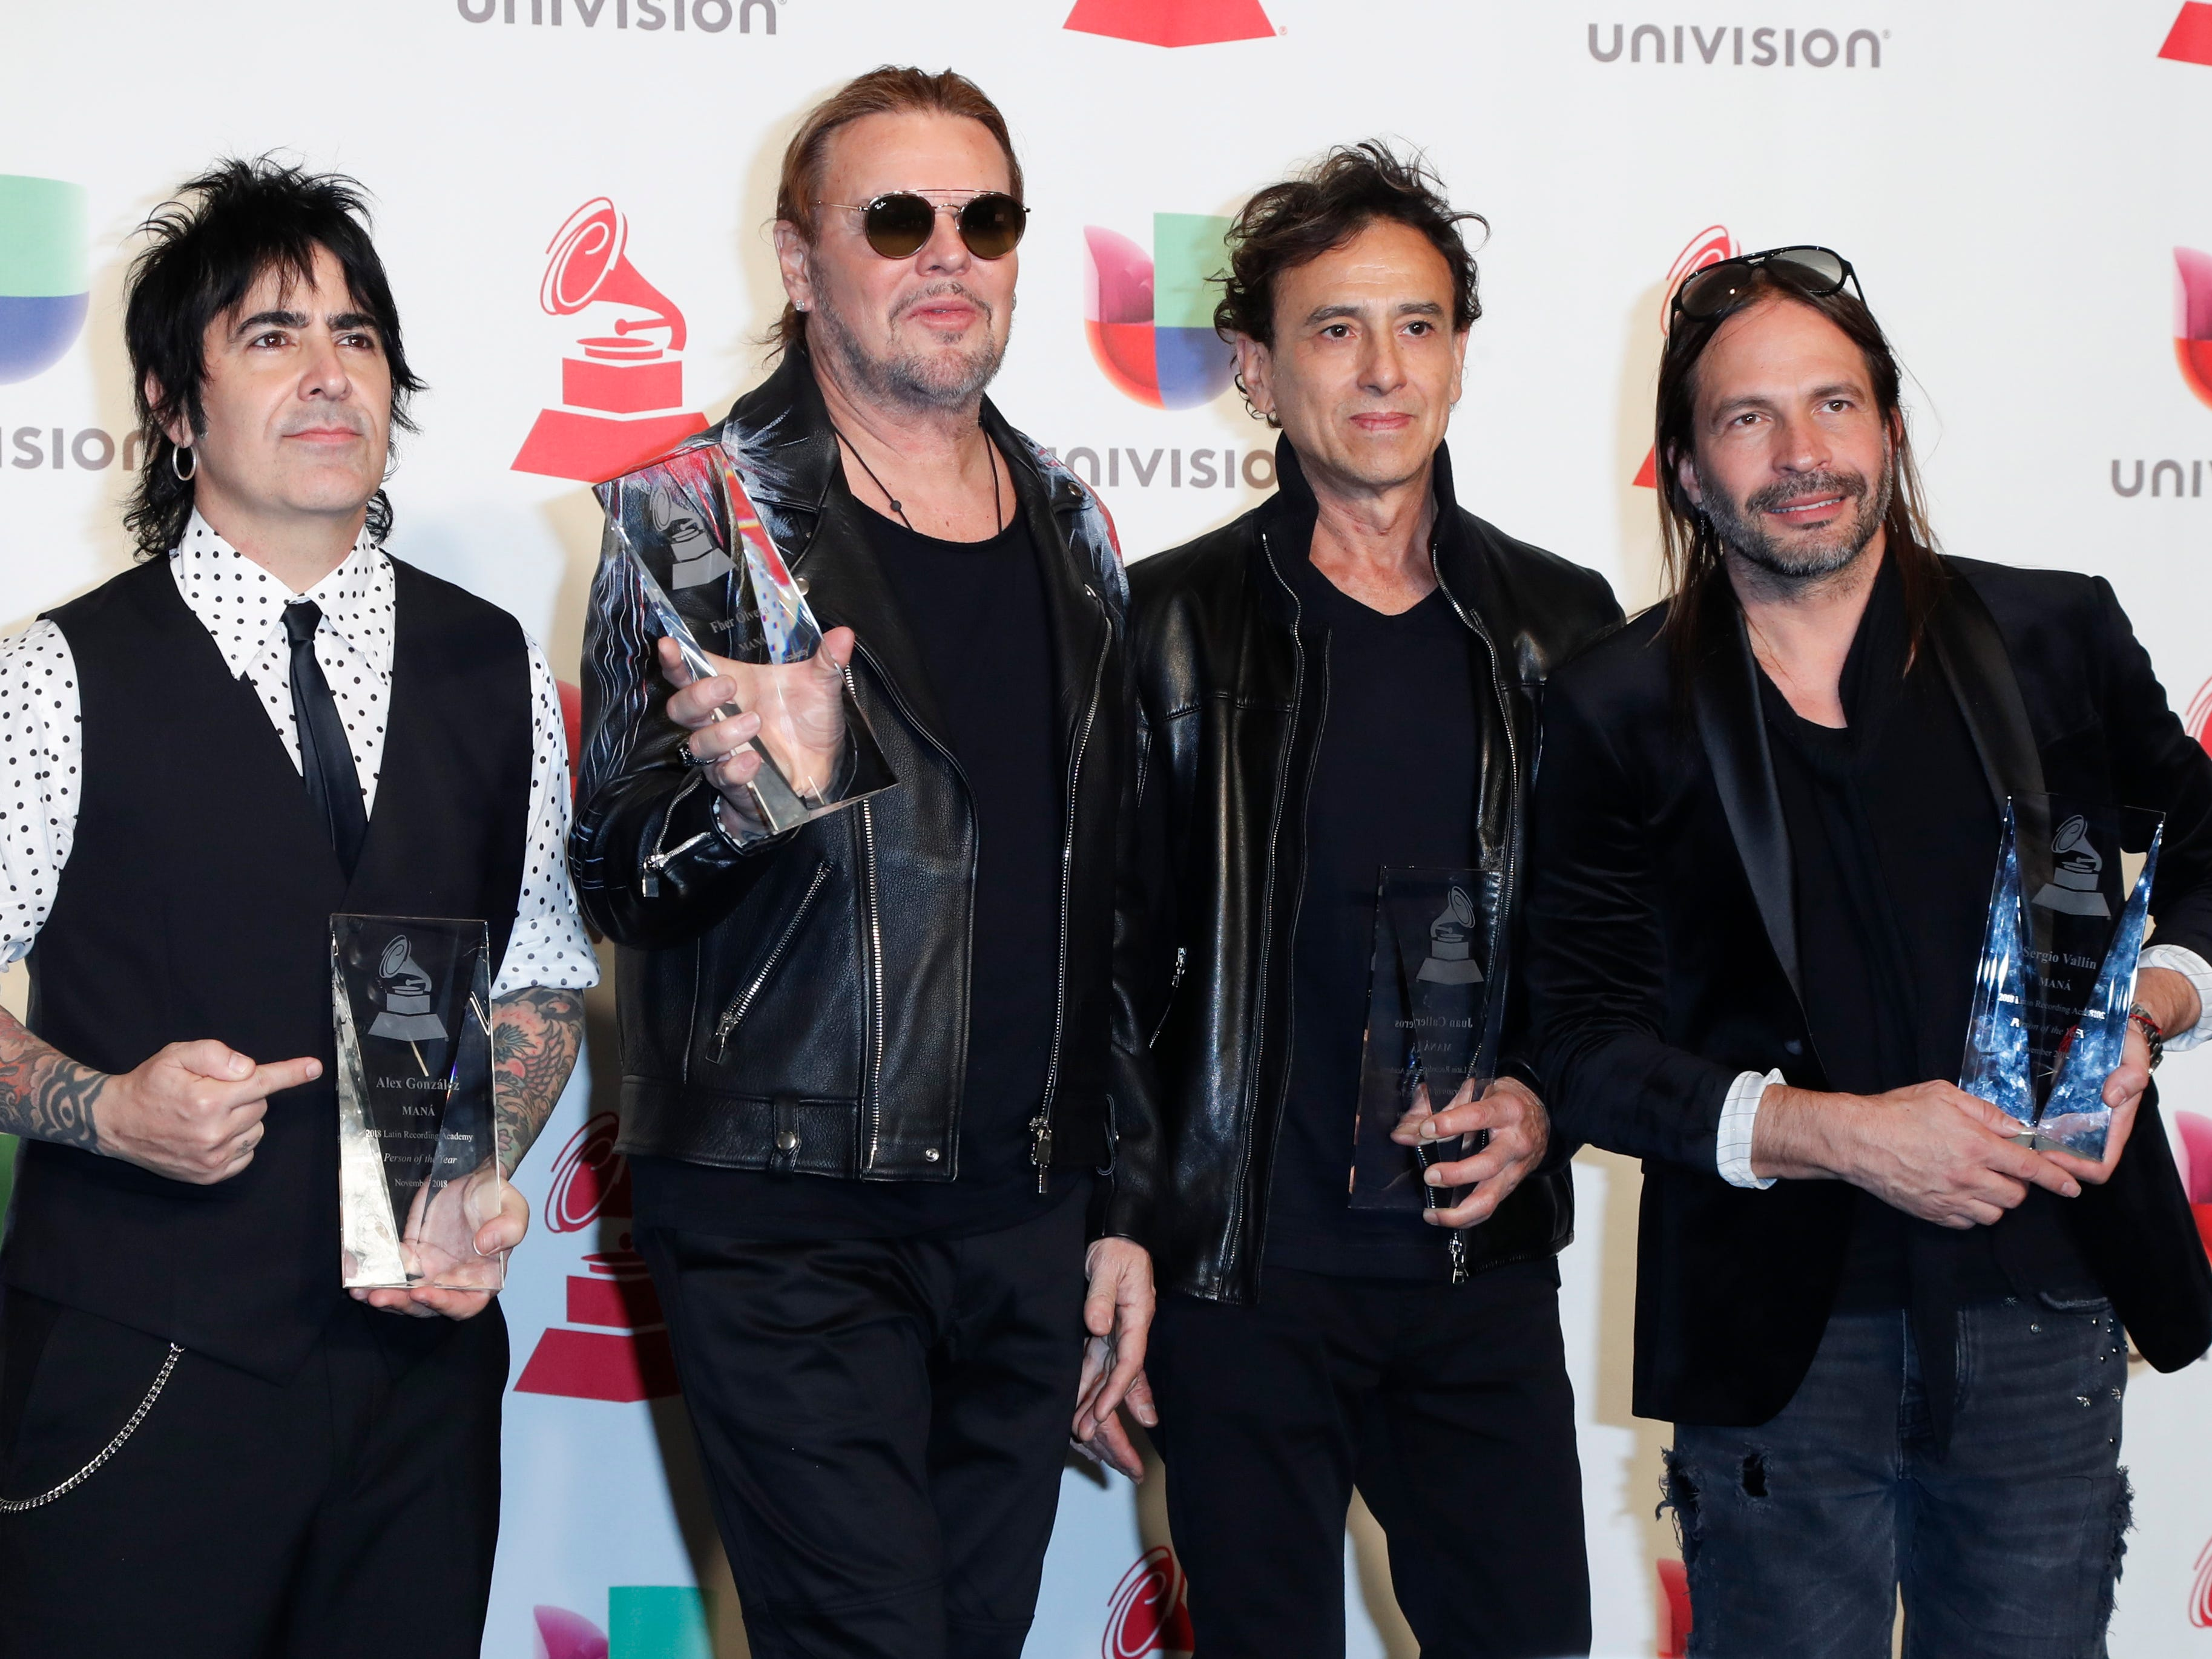 Maná after receiving Latin Grammy honor: We vow to fight for immigrants, women's rights